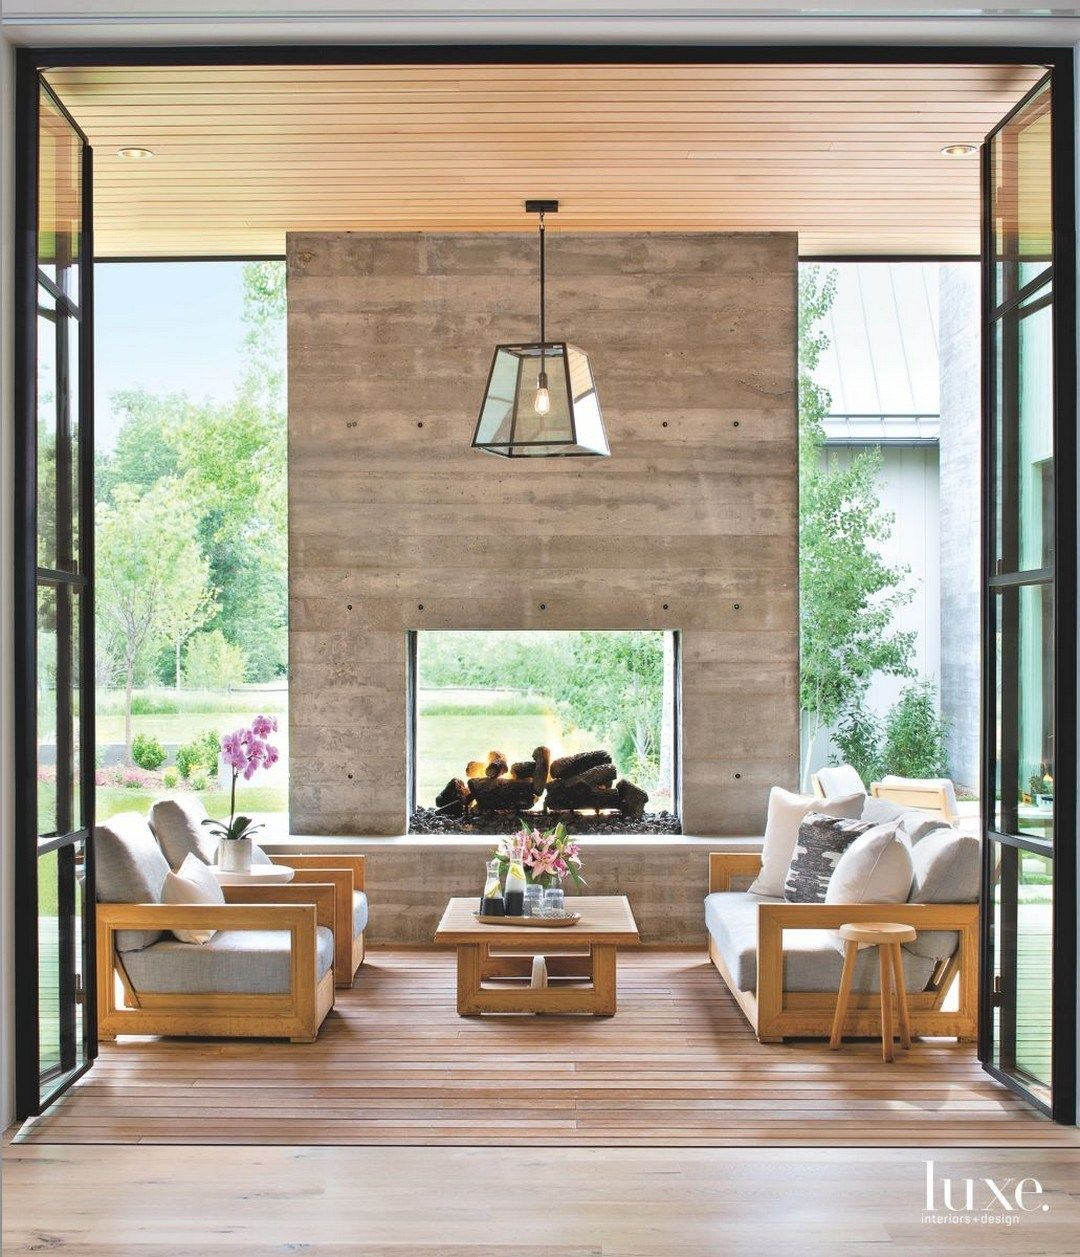 Awesome Outdoor Fireplace Design Ideas 9 Outdoor Fireplace Designs Indoor Outdoor Fireplaces Fireplace Design #outdoor #living #room #fireplace